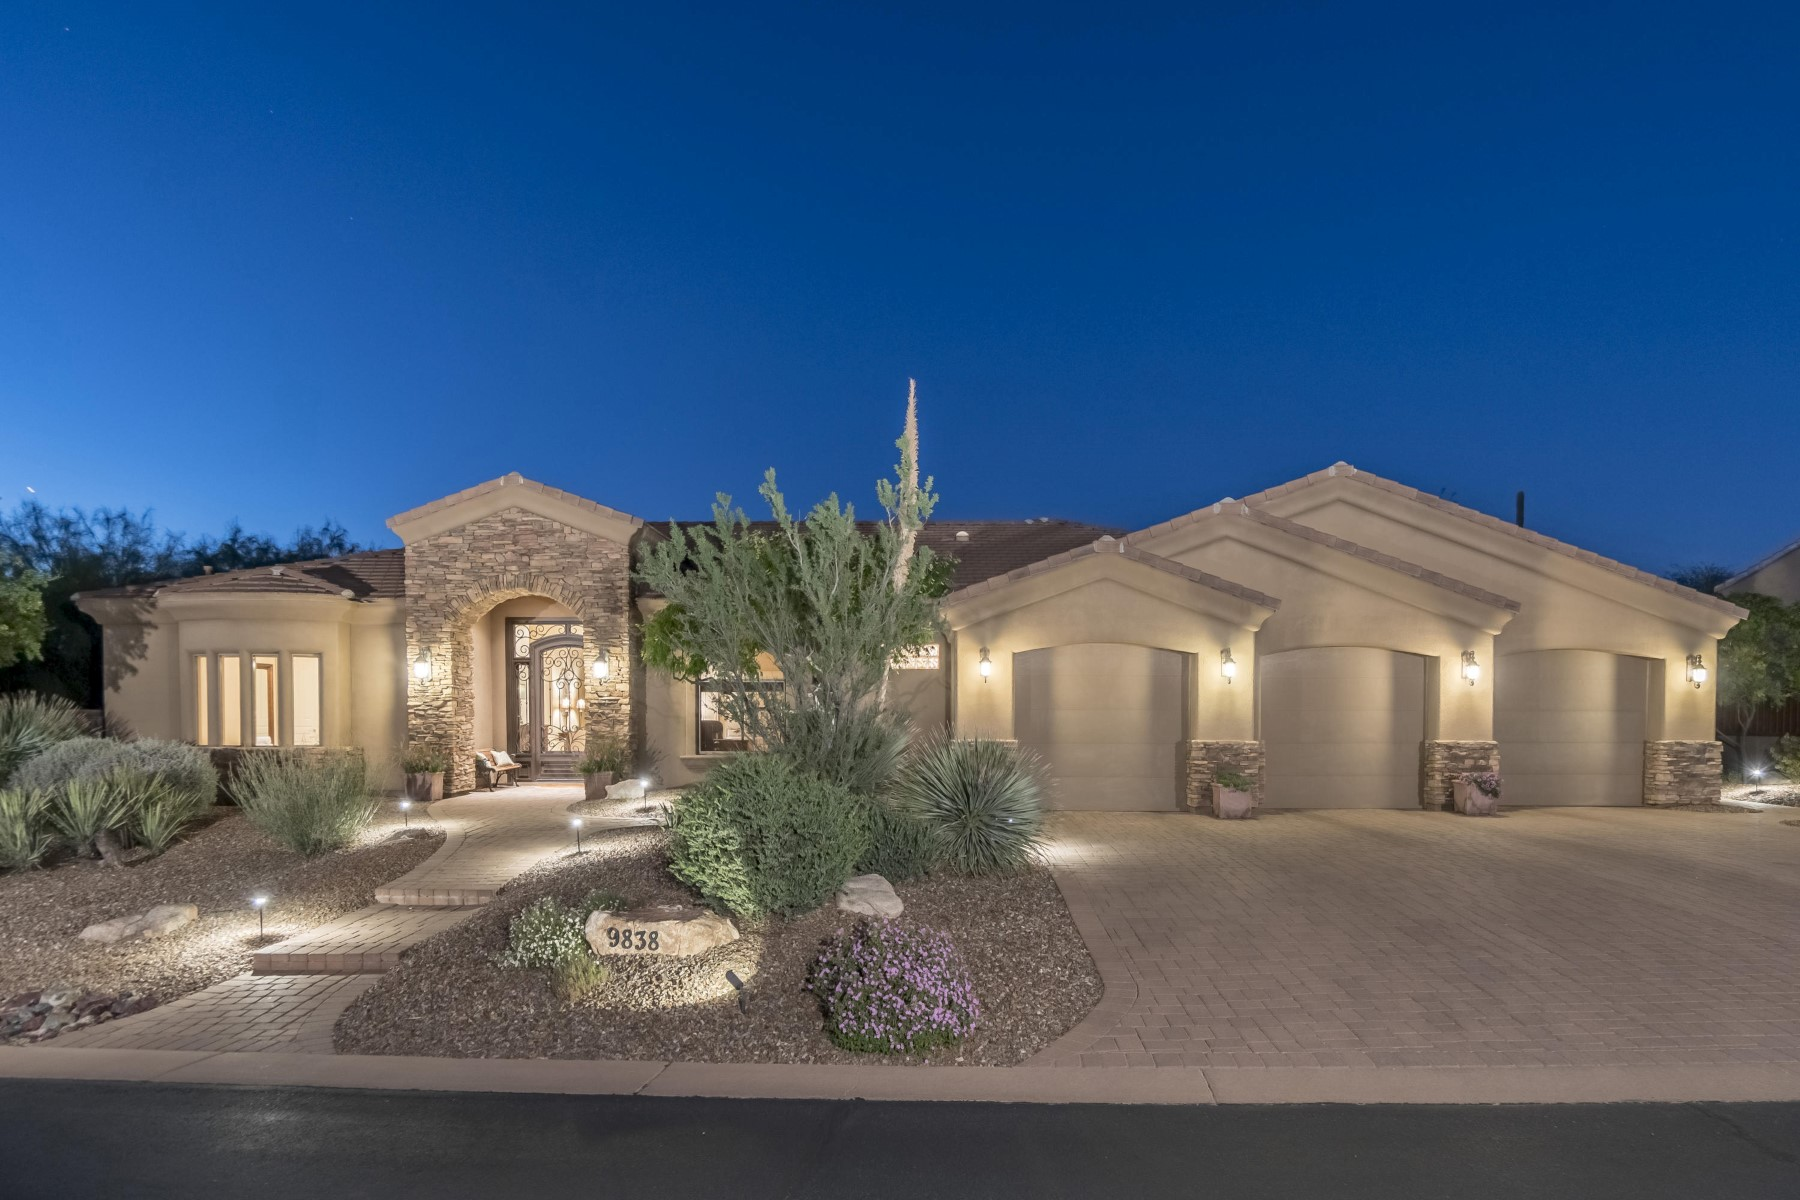 Single Family Home for Sale at Absolutely impeccable custom home in Monument at Troon North 9838 E Monument Dr Scottsdale, Arizona, 85262 United States